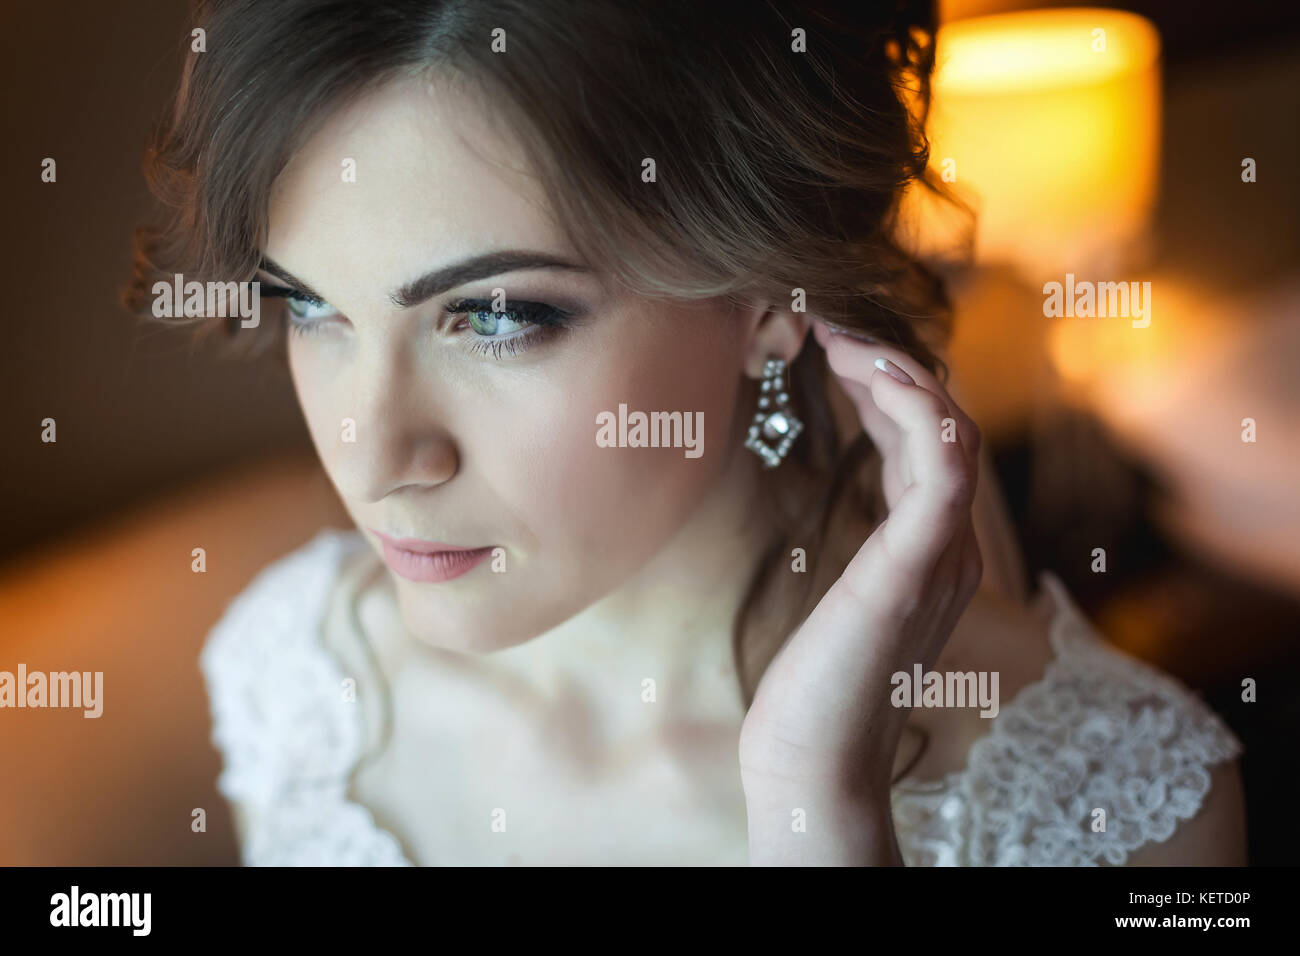 Young bride getting ready for the wedding - Stock Image